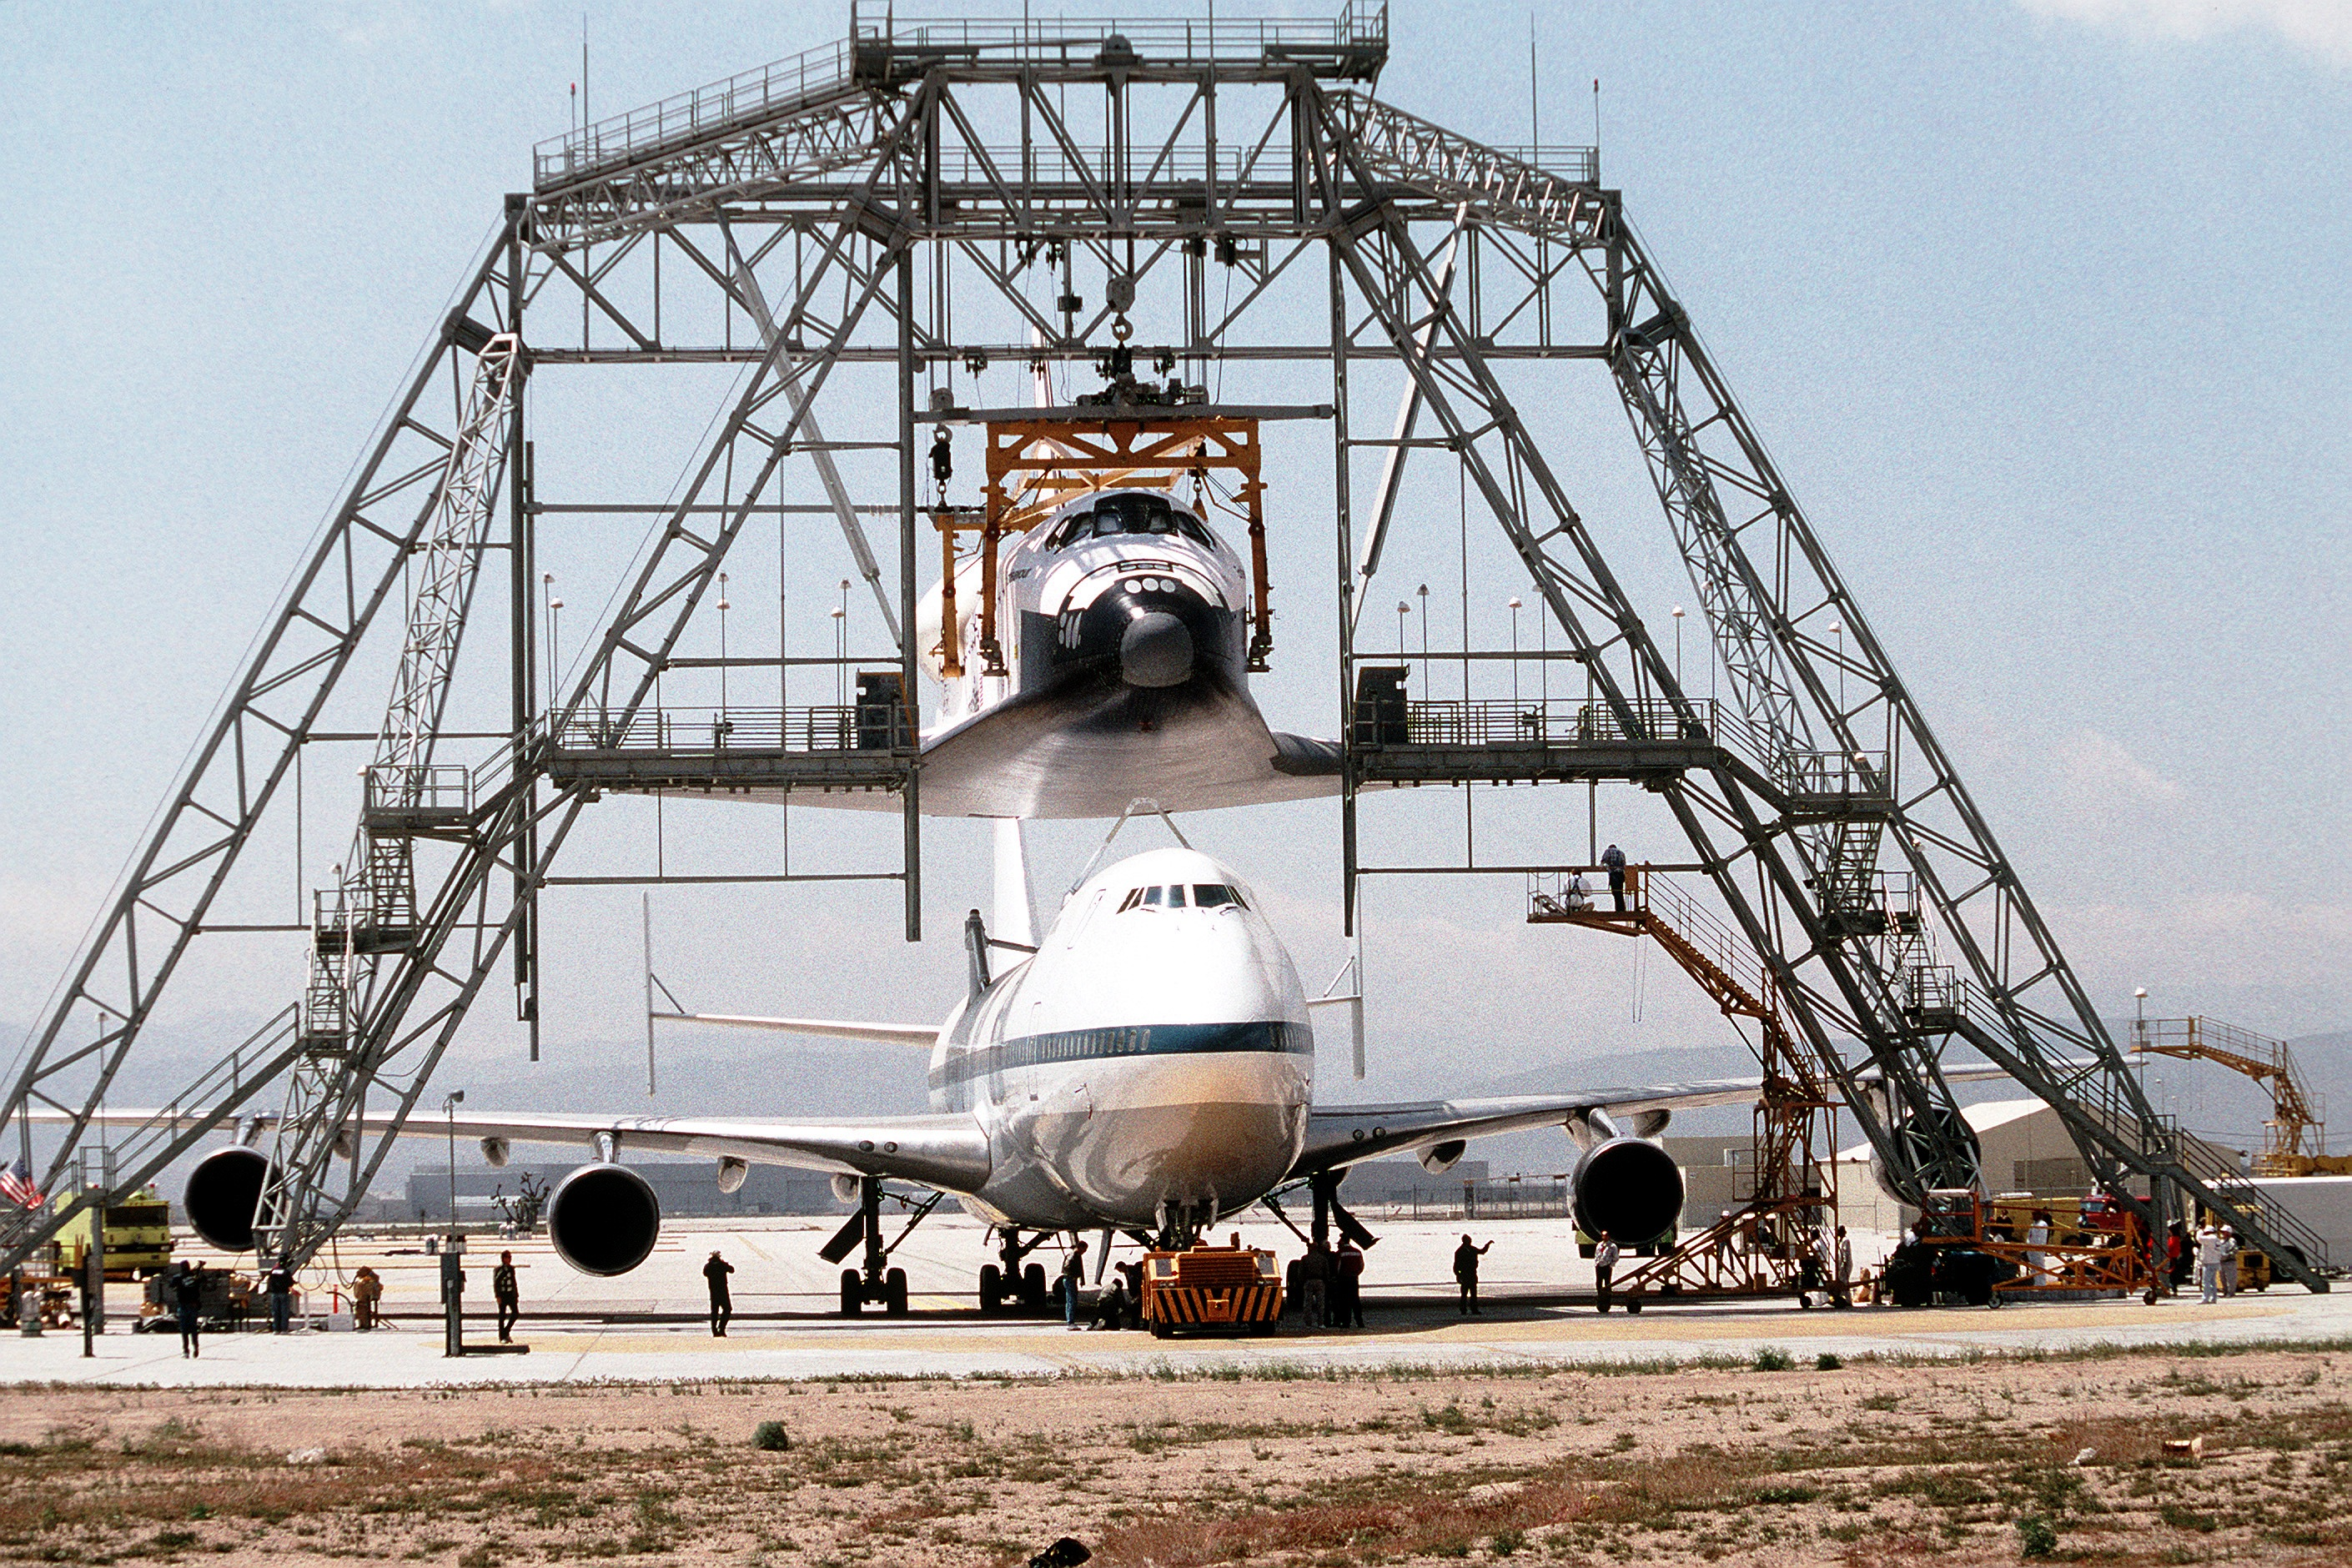 nasa shuttle facility bbw dating site Get the latest breaking news across the us on abcnewscom.